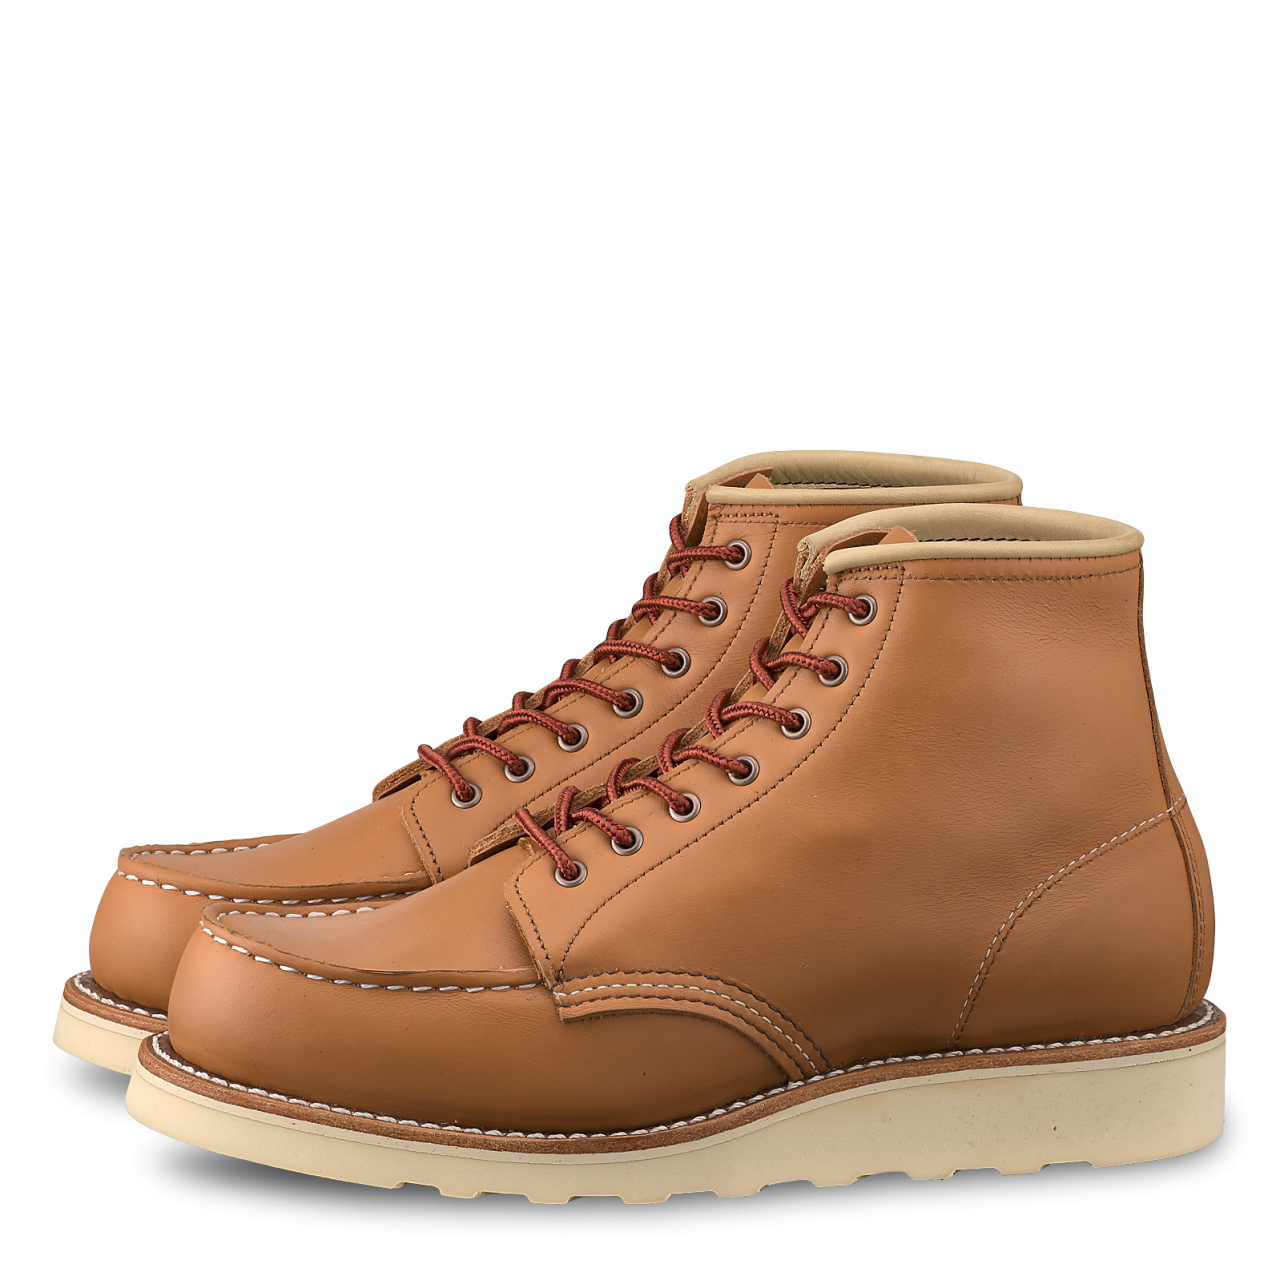 Red Wing 3383 Moc Toe